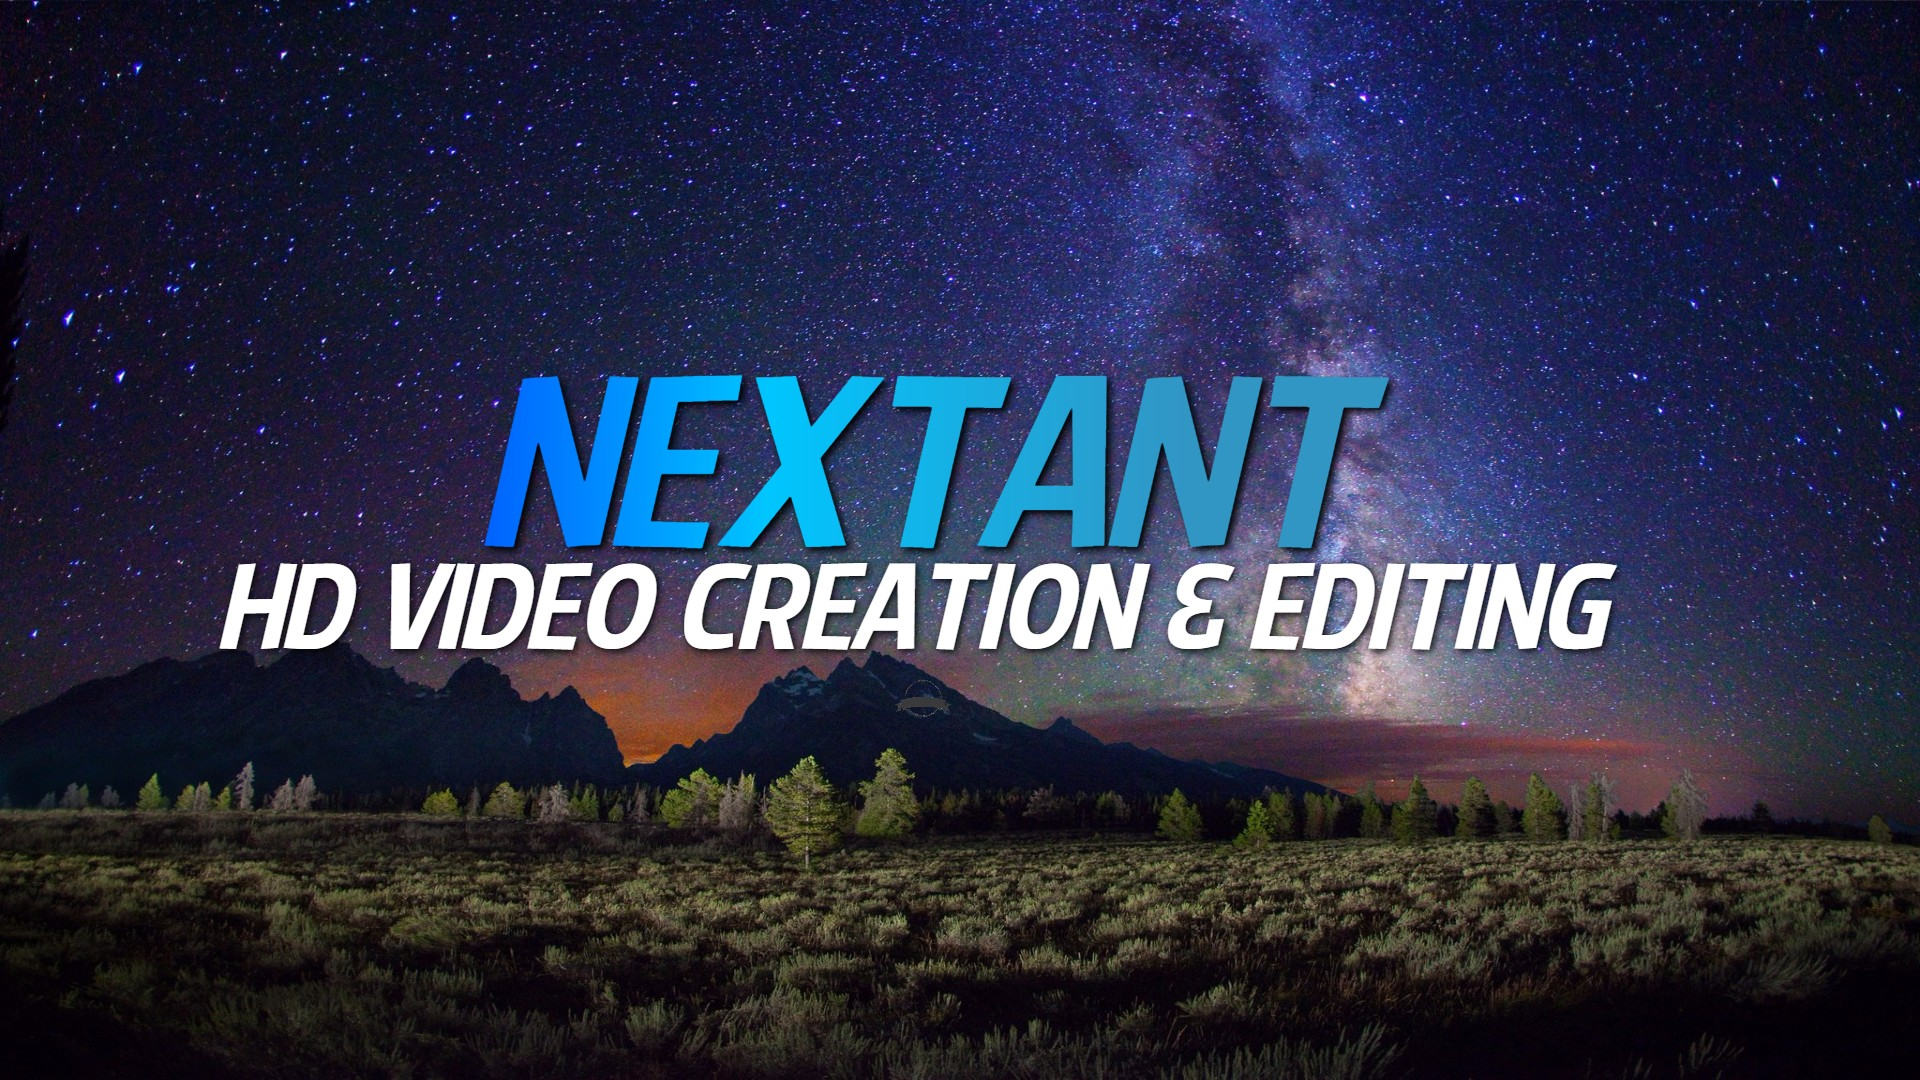 [EXCLUSIVE] 1080P HD VIDEO CREATION & EDITING!